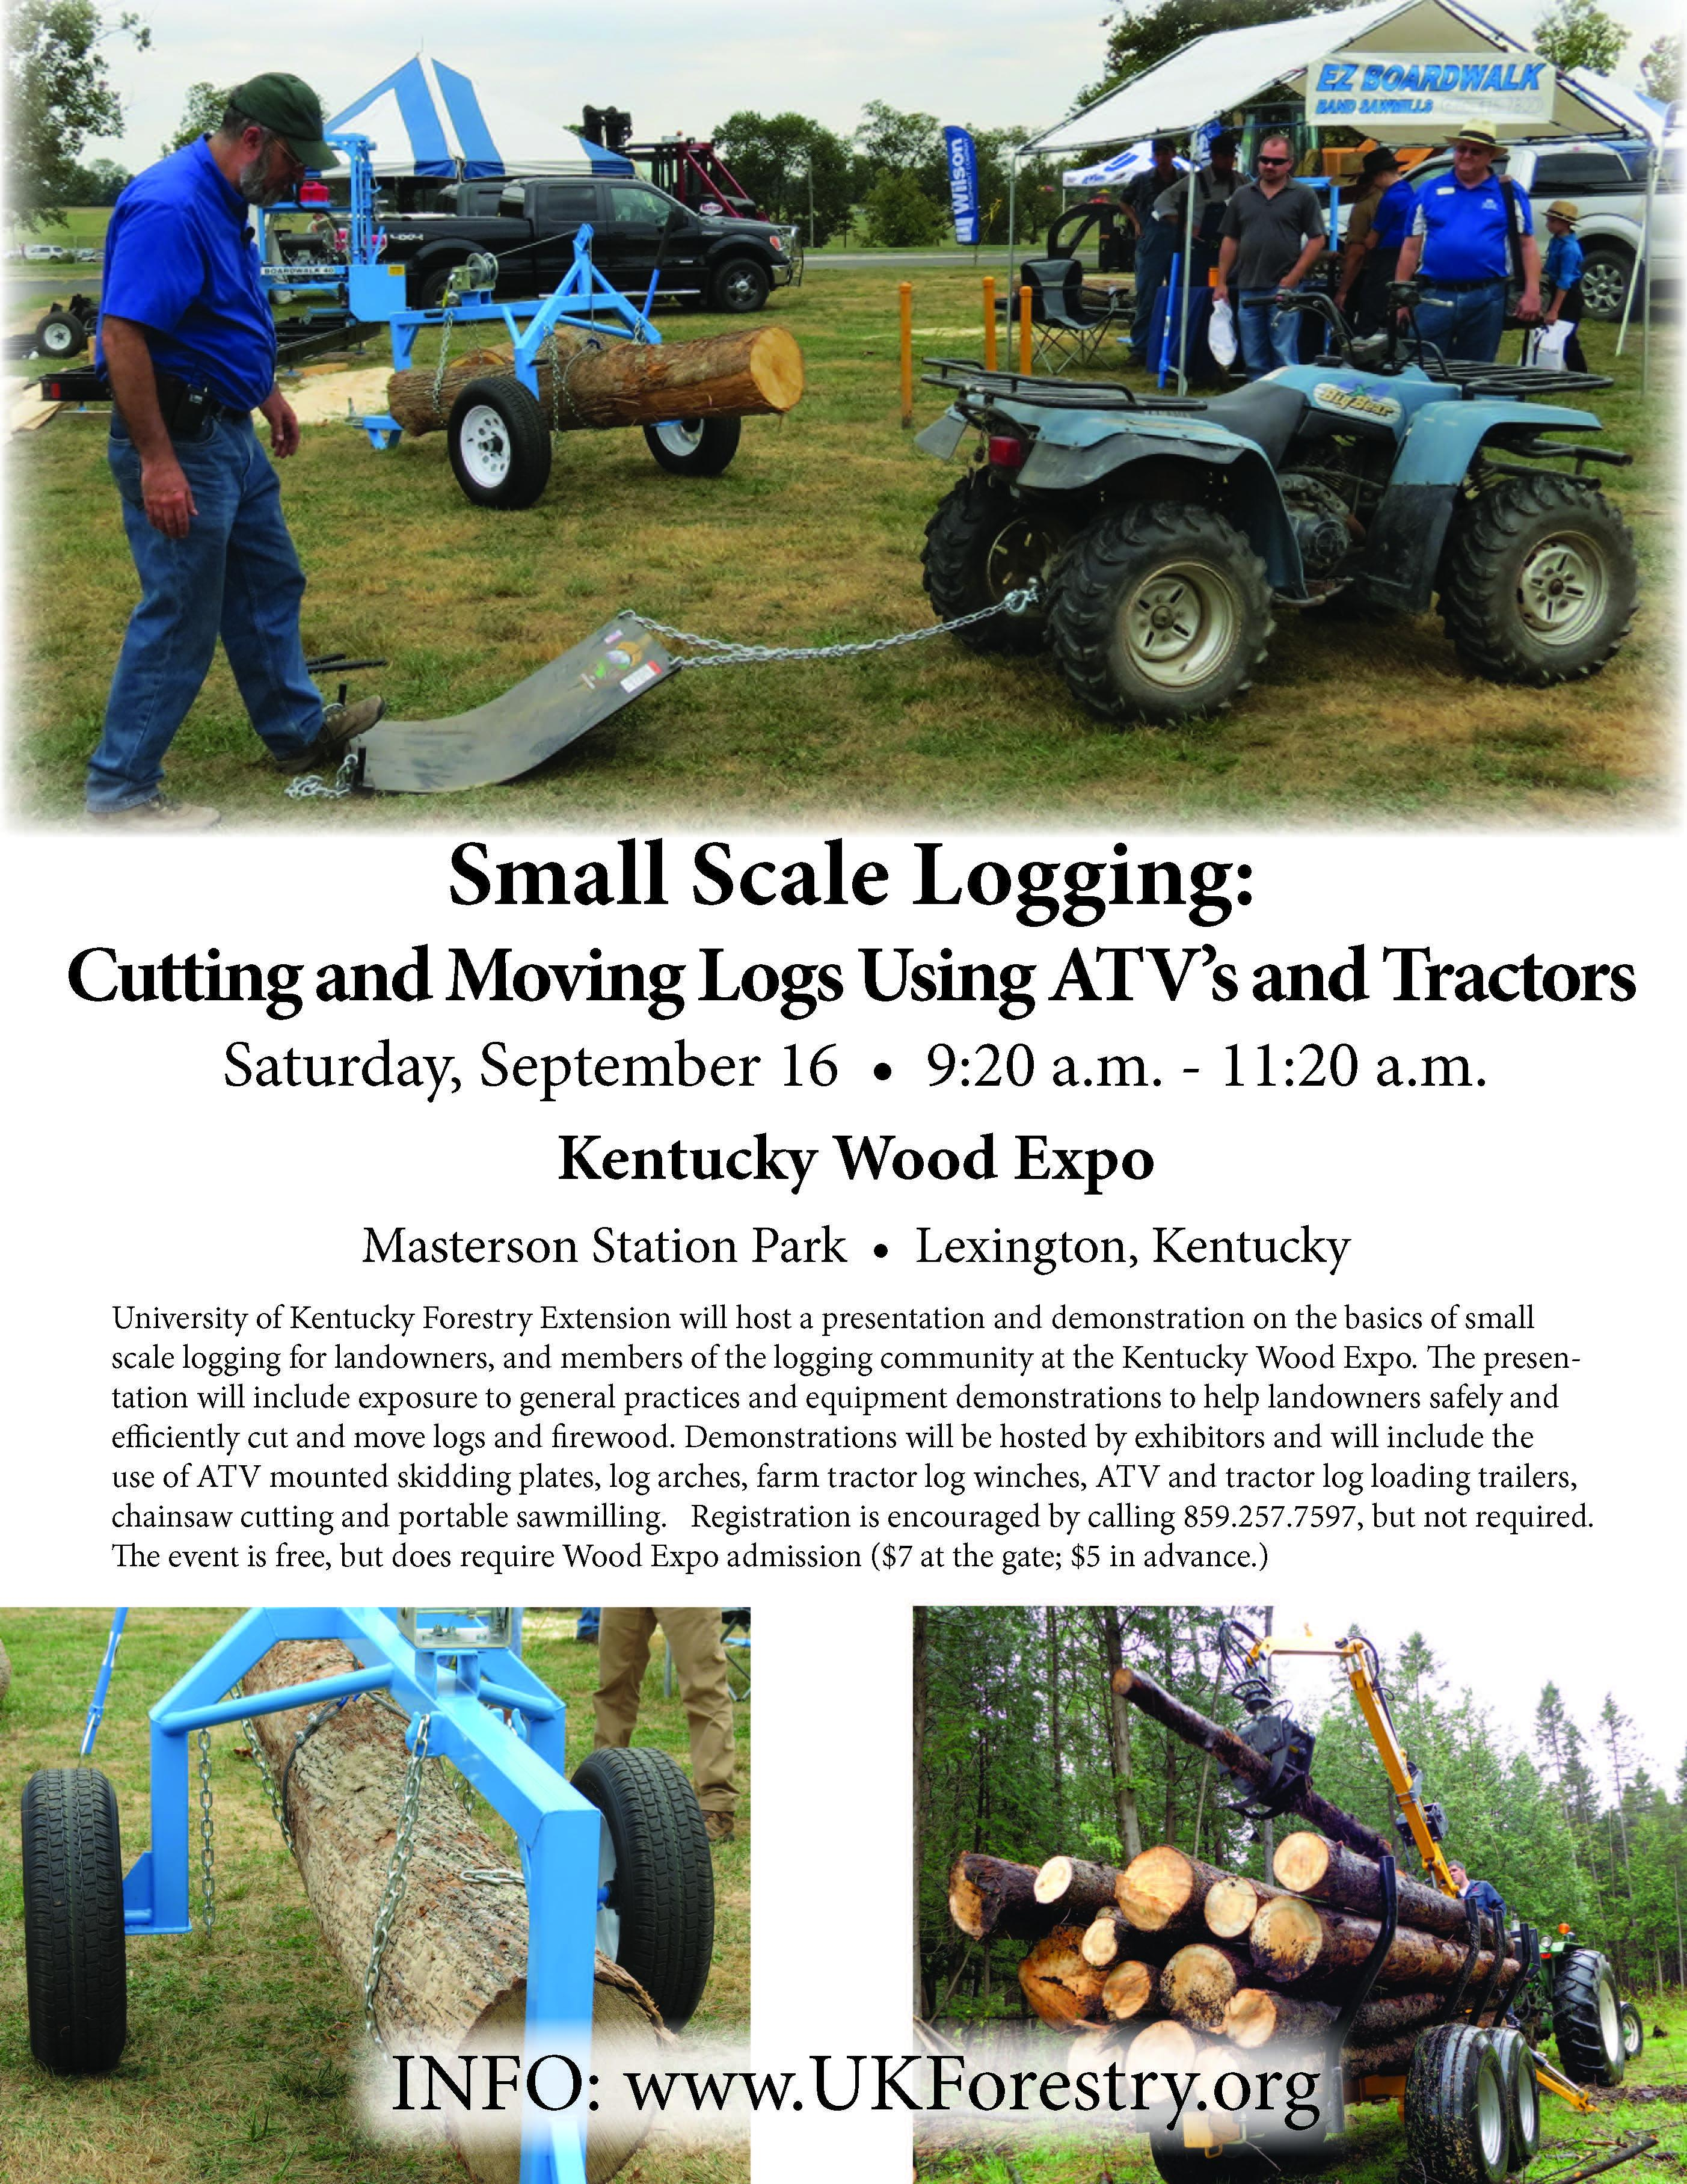 Small Scale Logging Flyer